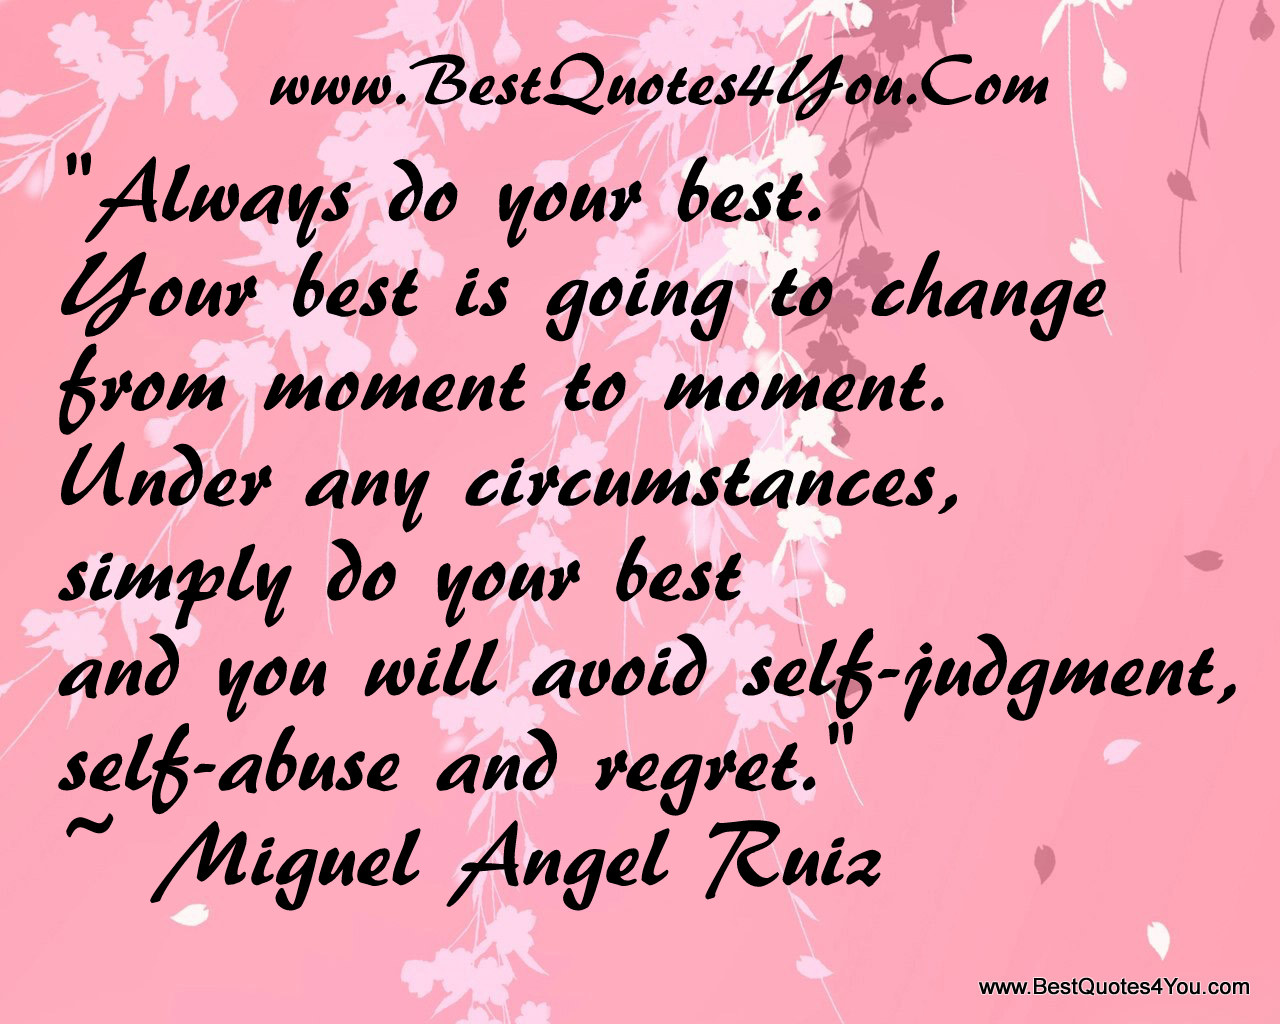 """ Always Do Your Best. Your Best Is Going To Change From Moment To Moment…. - Miguel Angel Ruiz"